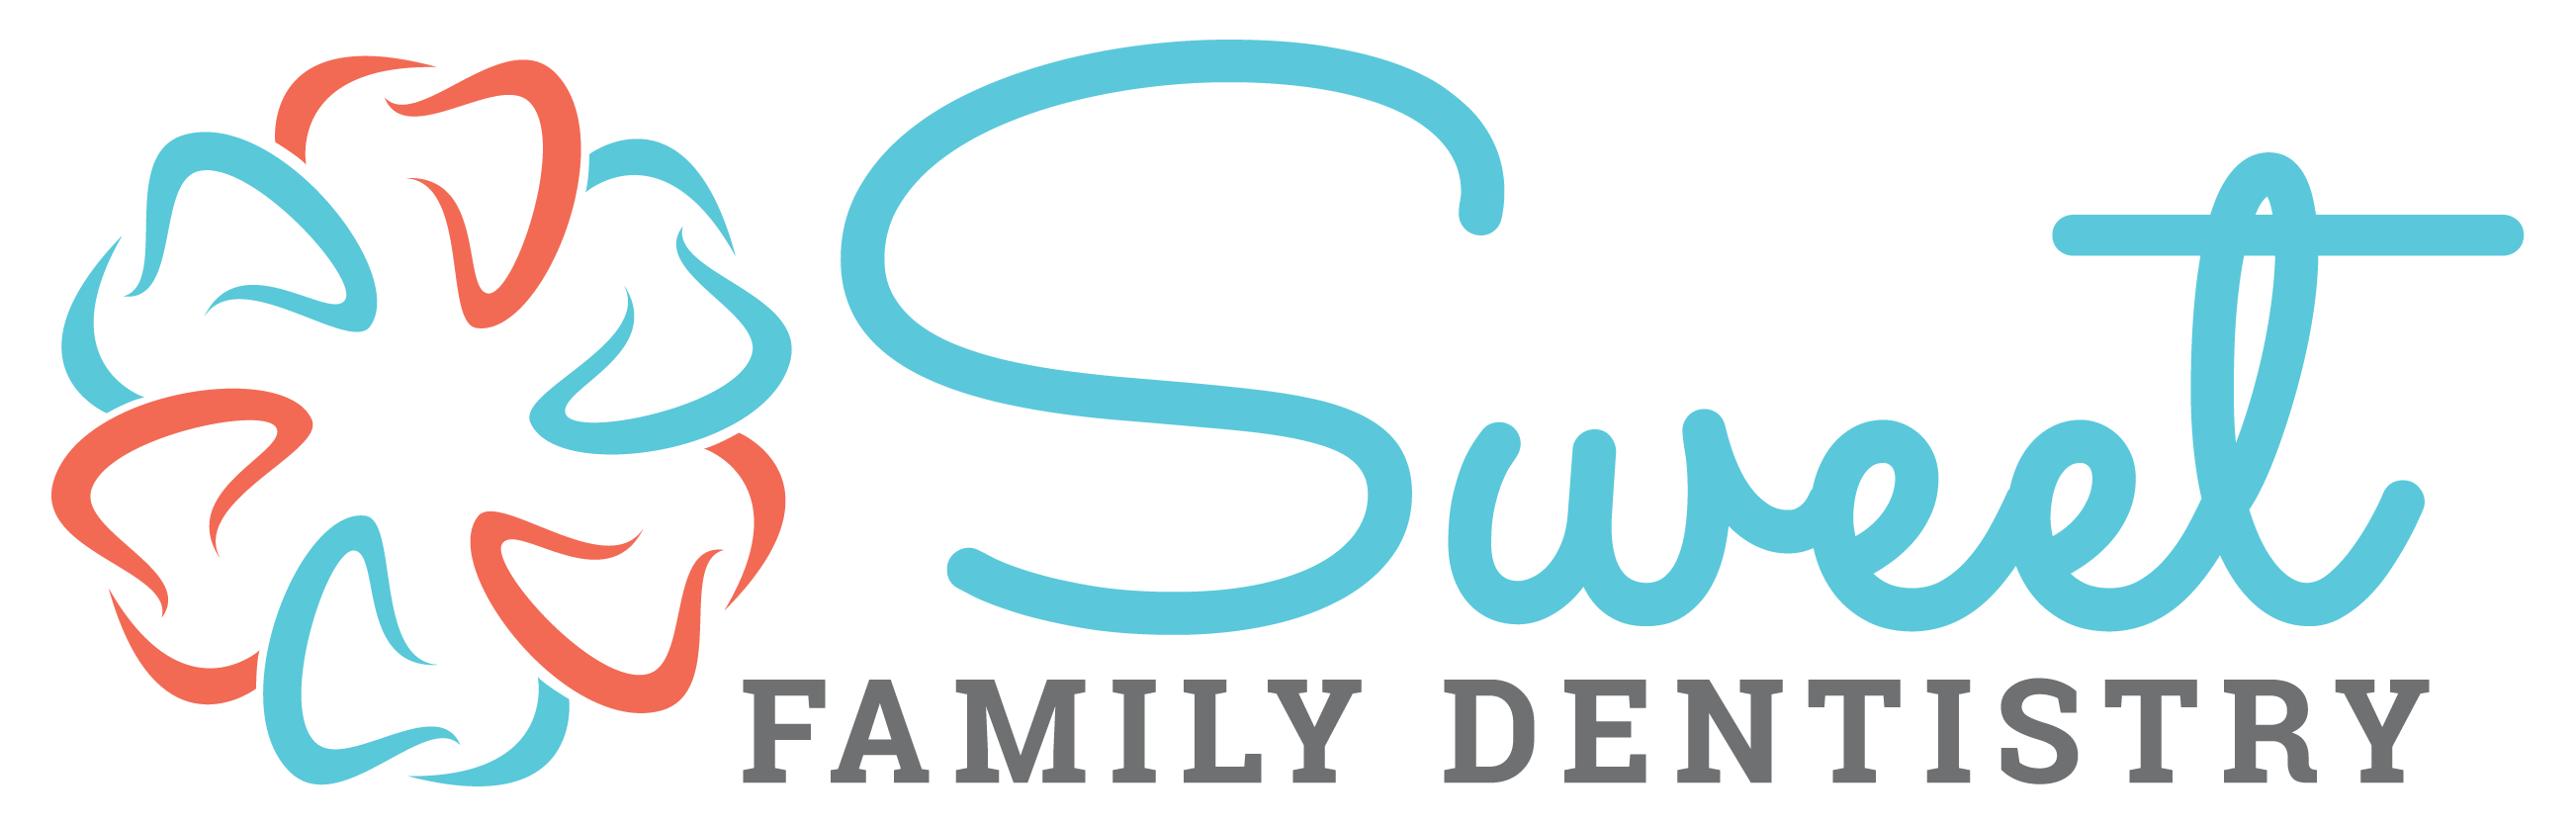 Sweet Family Dentistry | Family Dentistry in Rowlett, TX